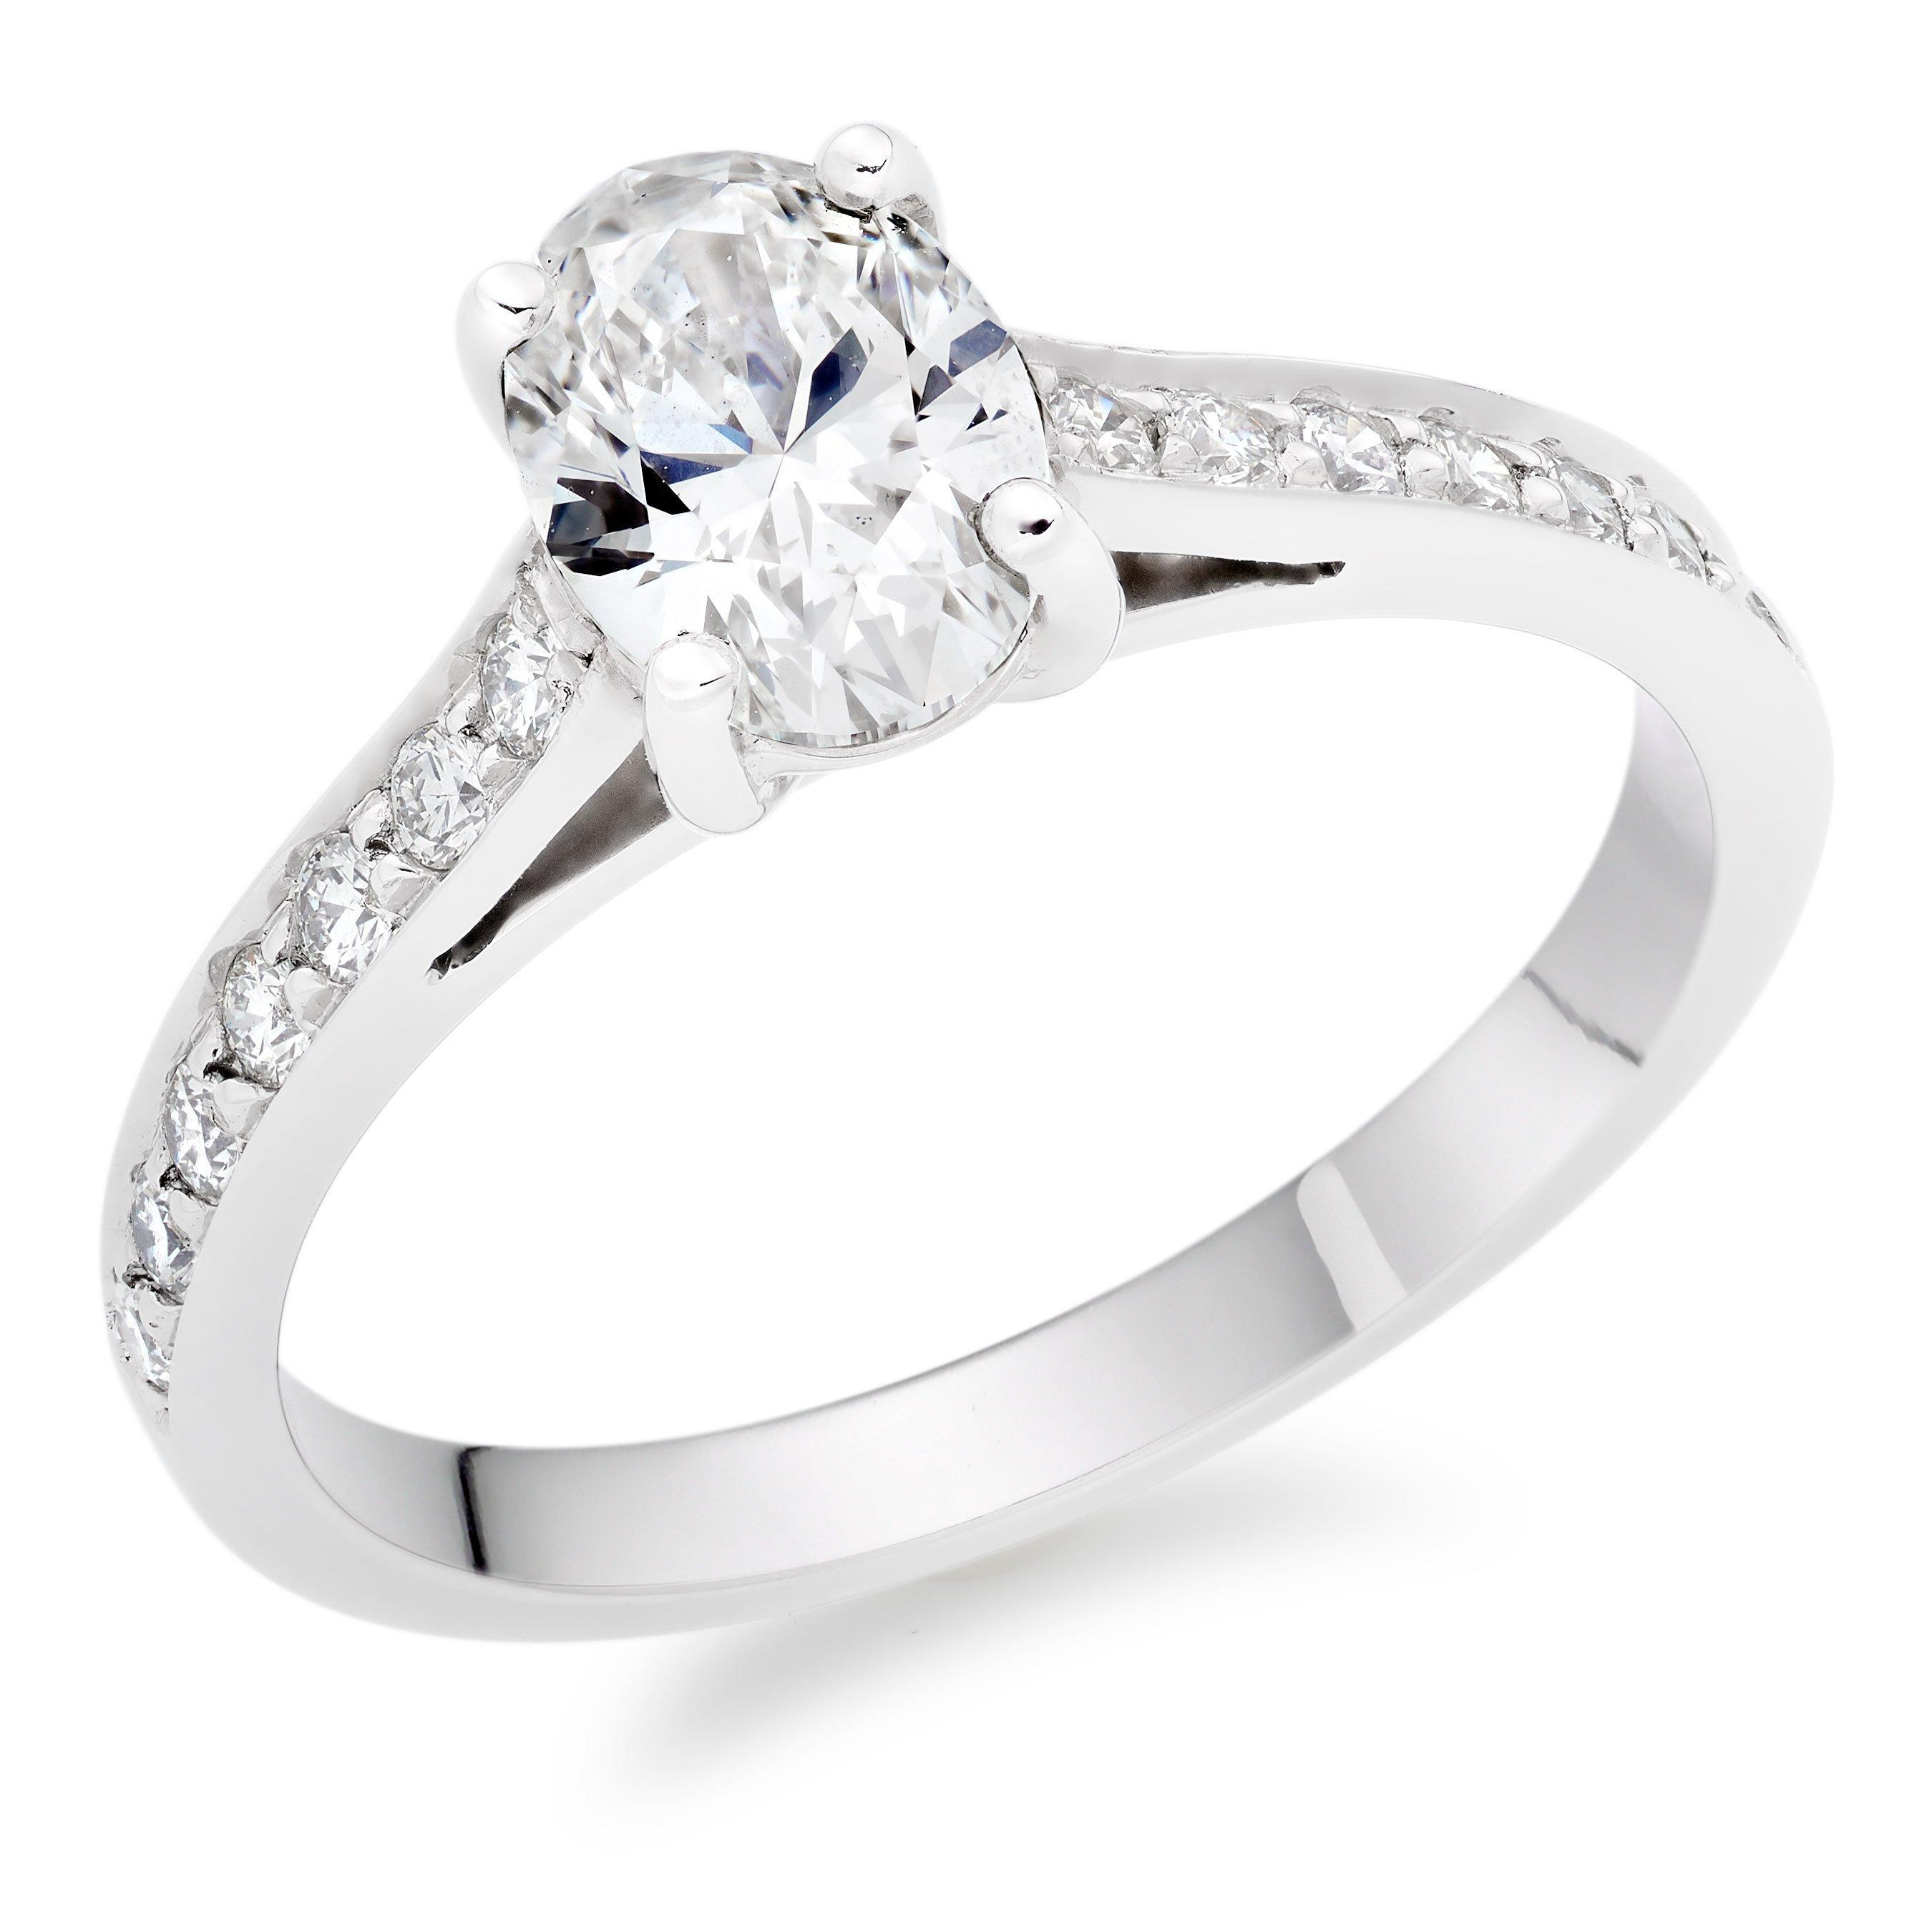 Once Platinum Diamond Oval Cut Solitaire Ring